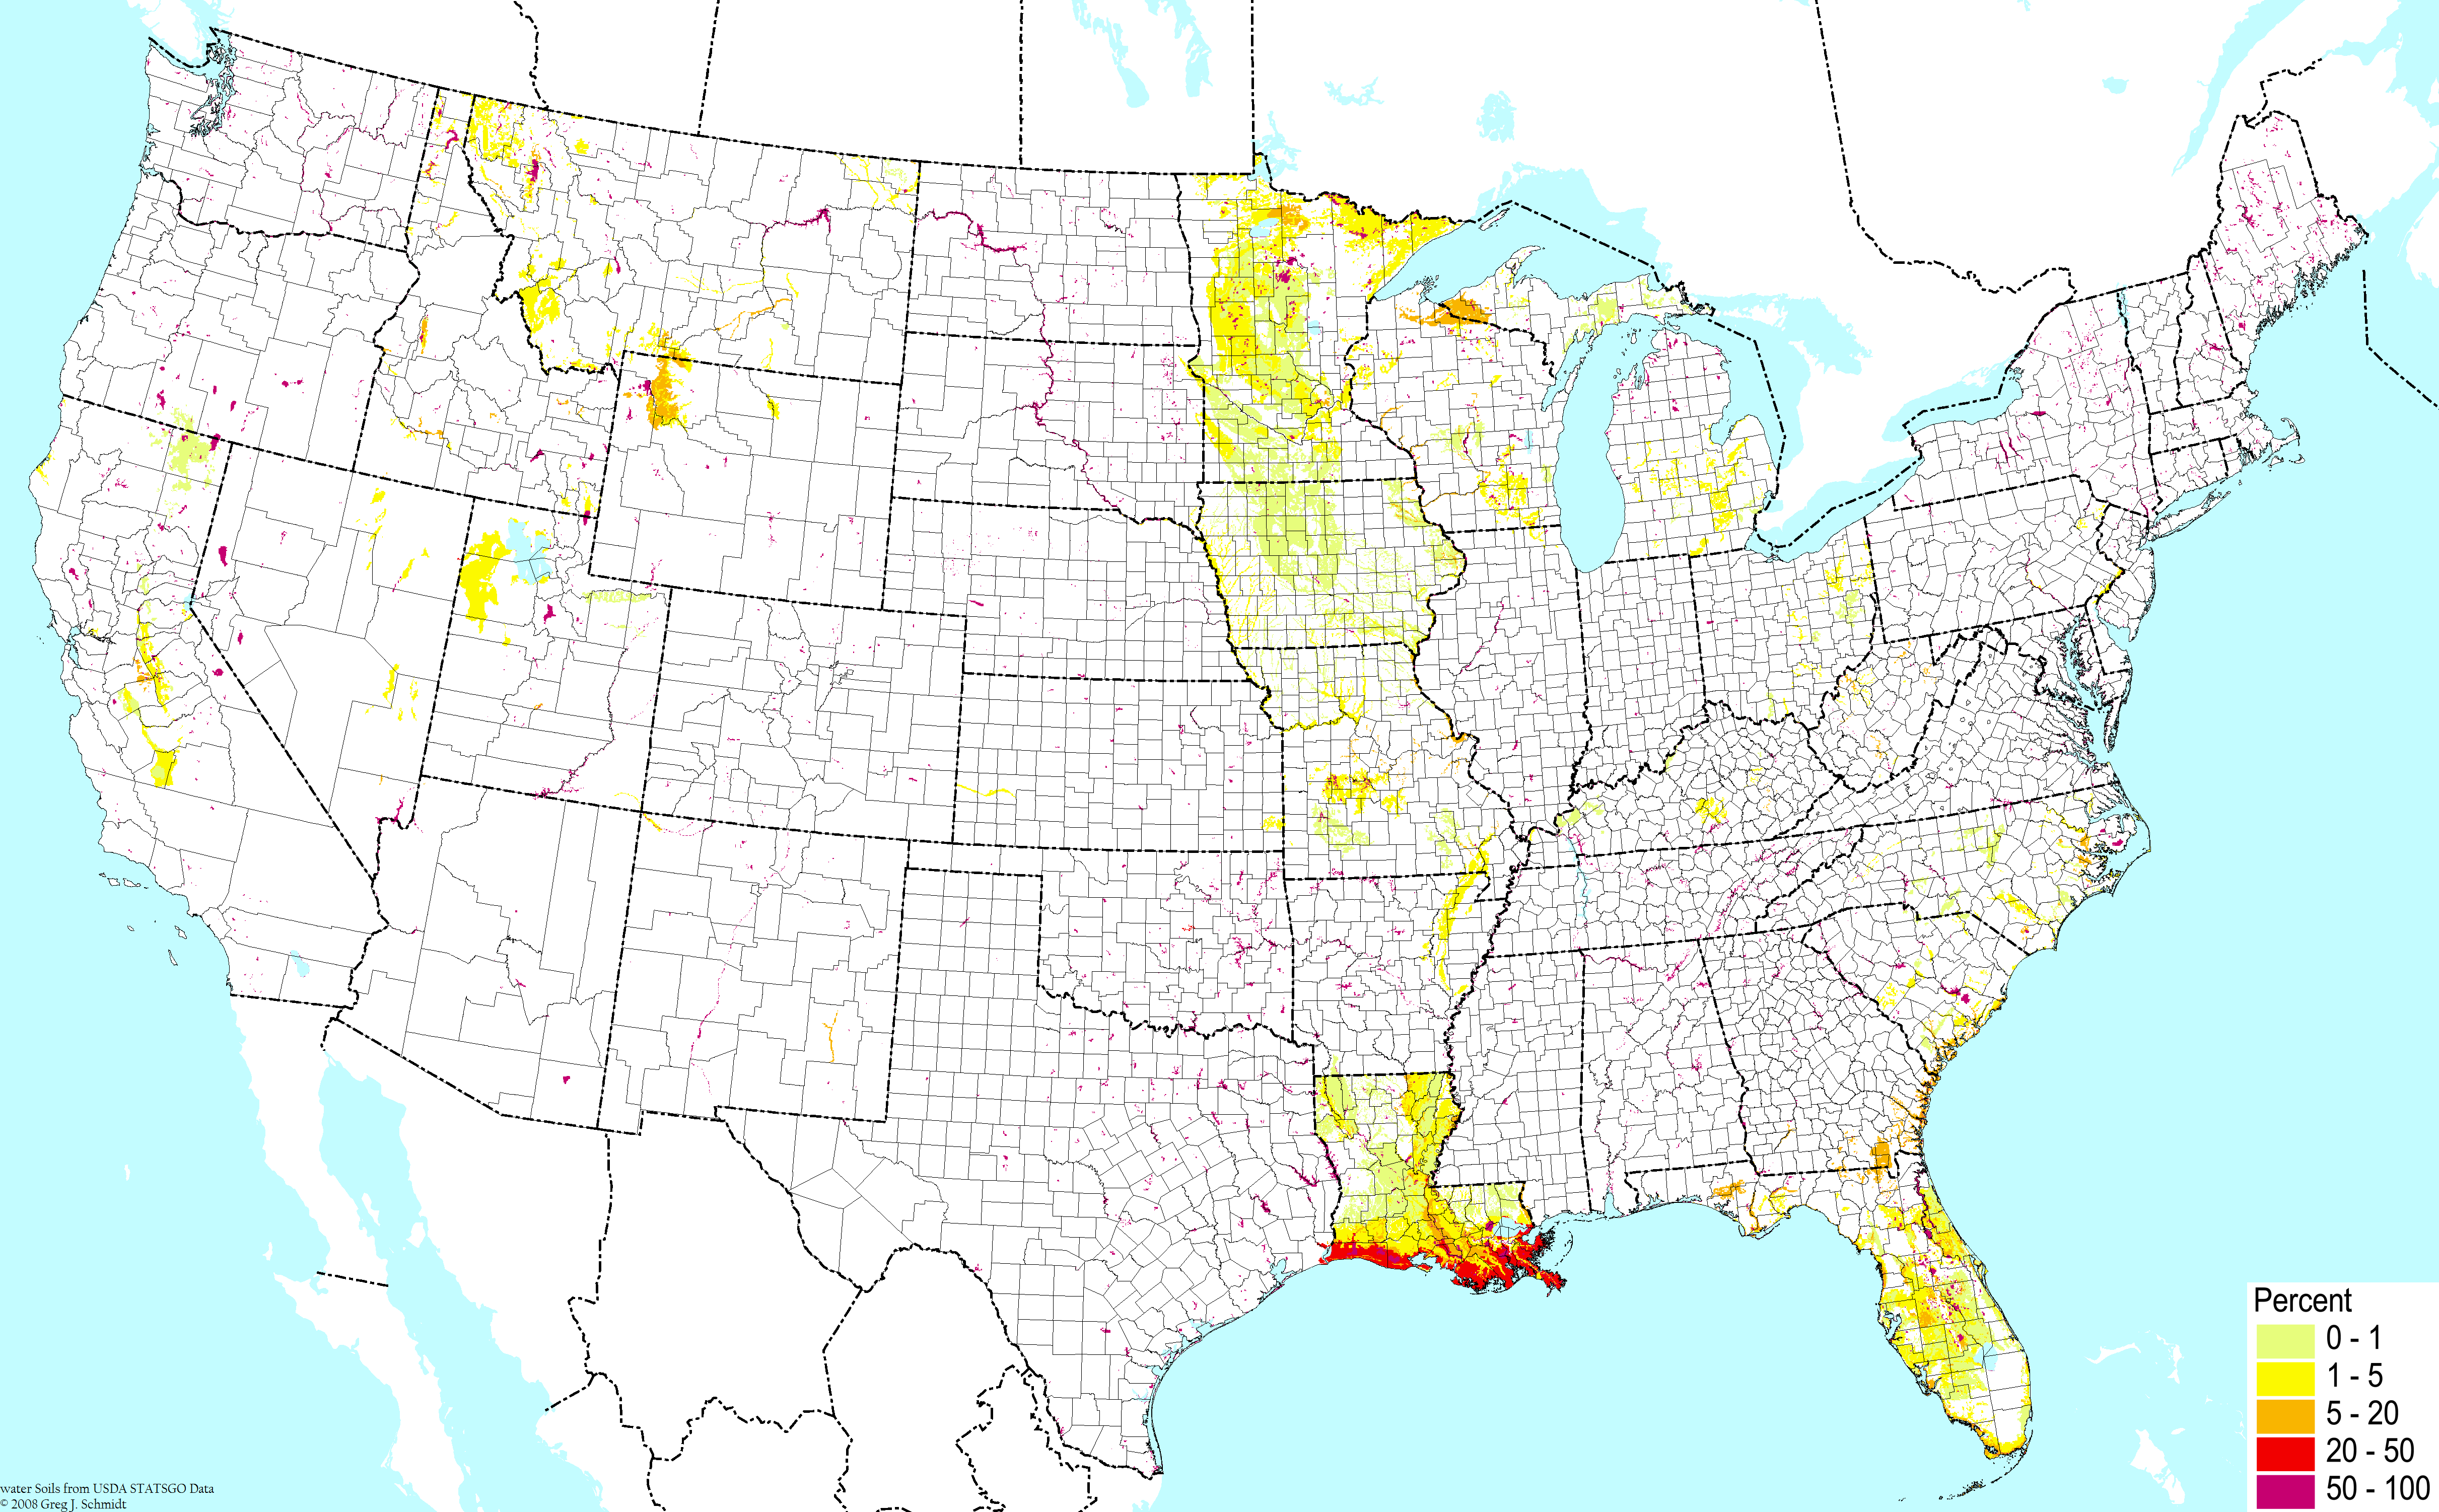 Soil Orders And Selected Suborders Of The United States Based On Soil Taxonomy Of The Usda Nrcs Cbonap